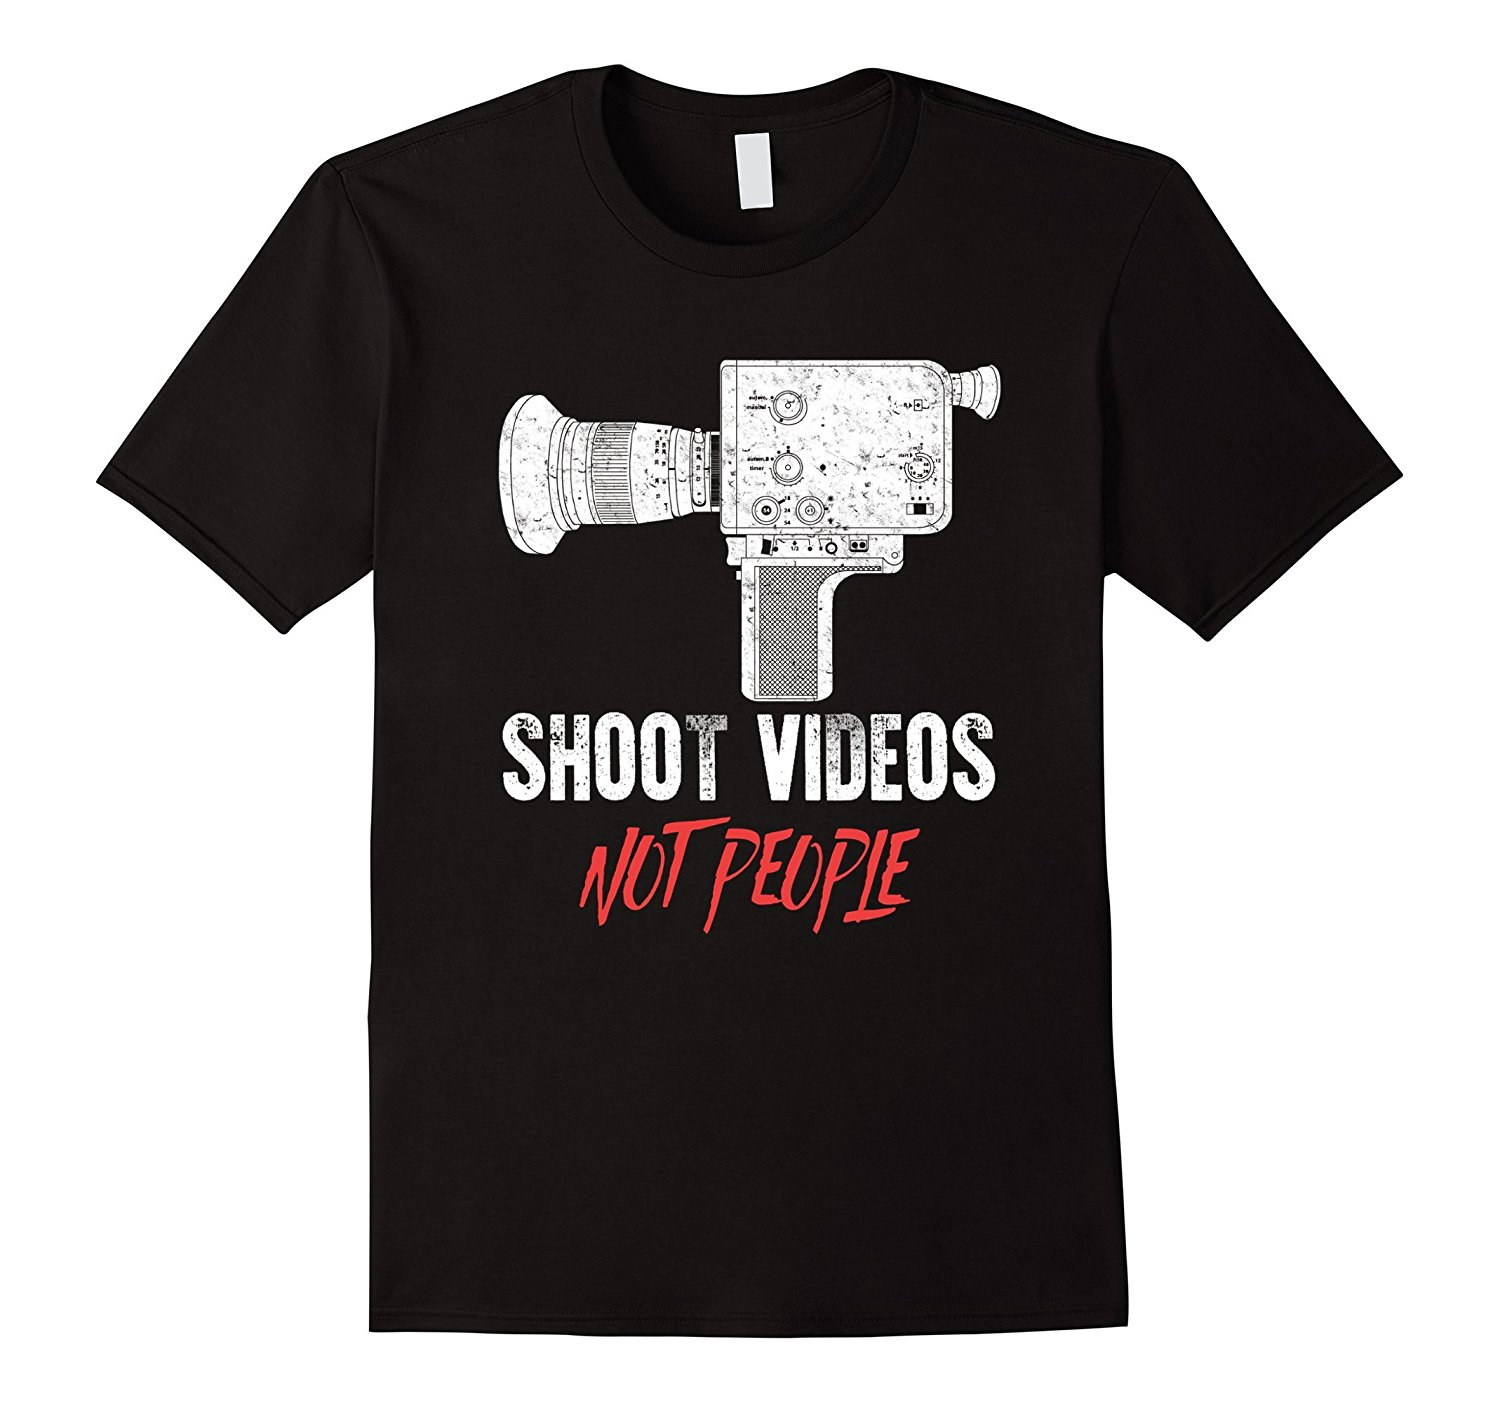 100% Cotton T Shirts Brand Clothing Tops Tees Shoot Videos, Not People! Funny Filmmaker T-Shirt